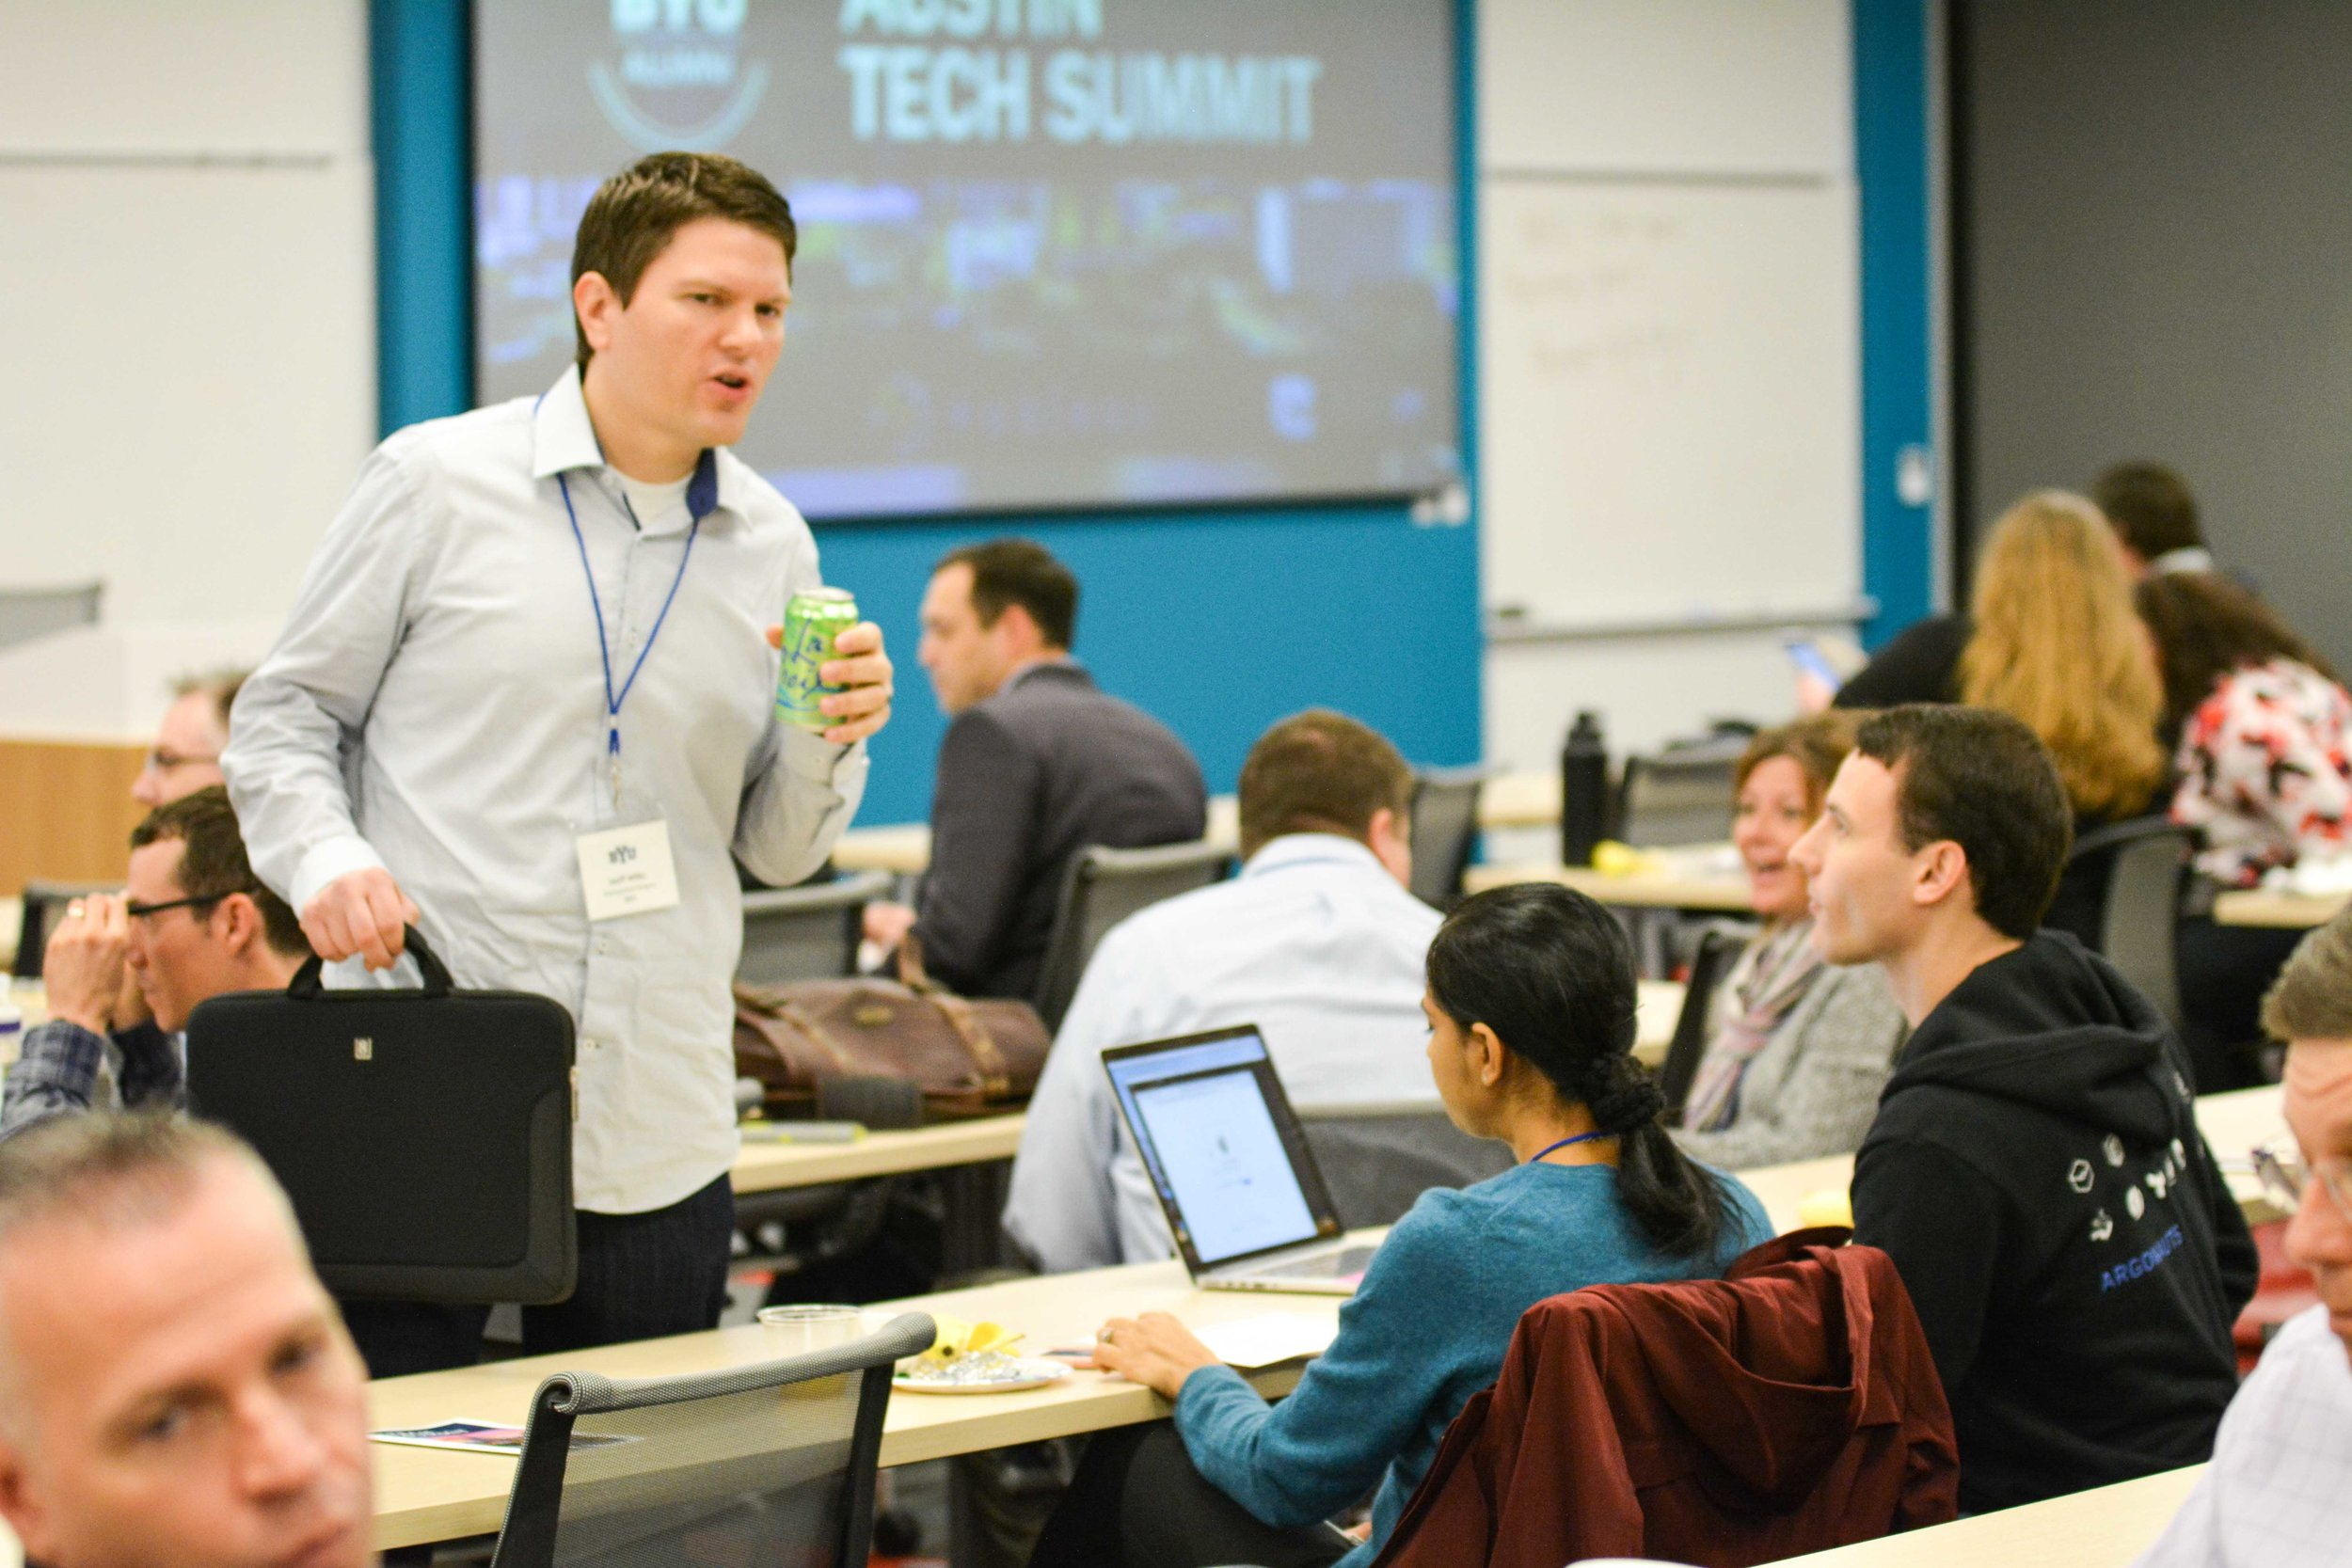 Austin Tech Summit (BYU)-33.jpg